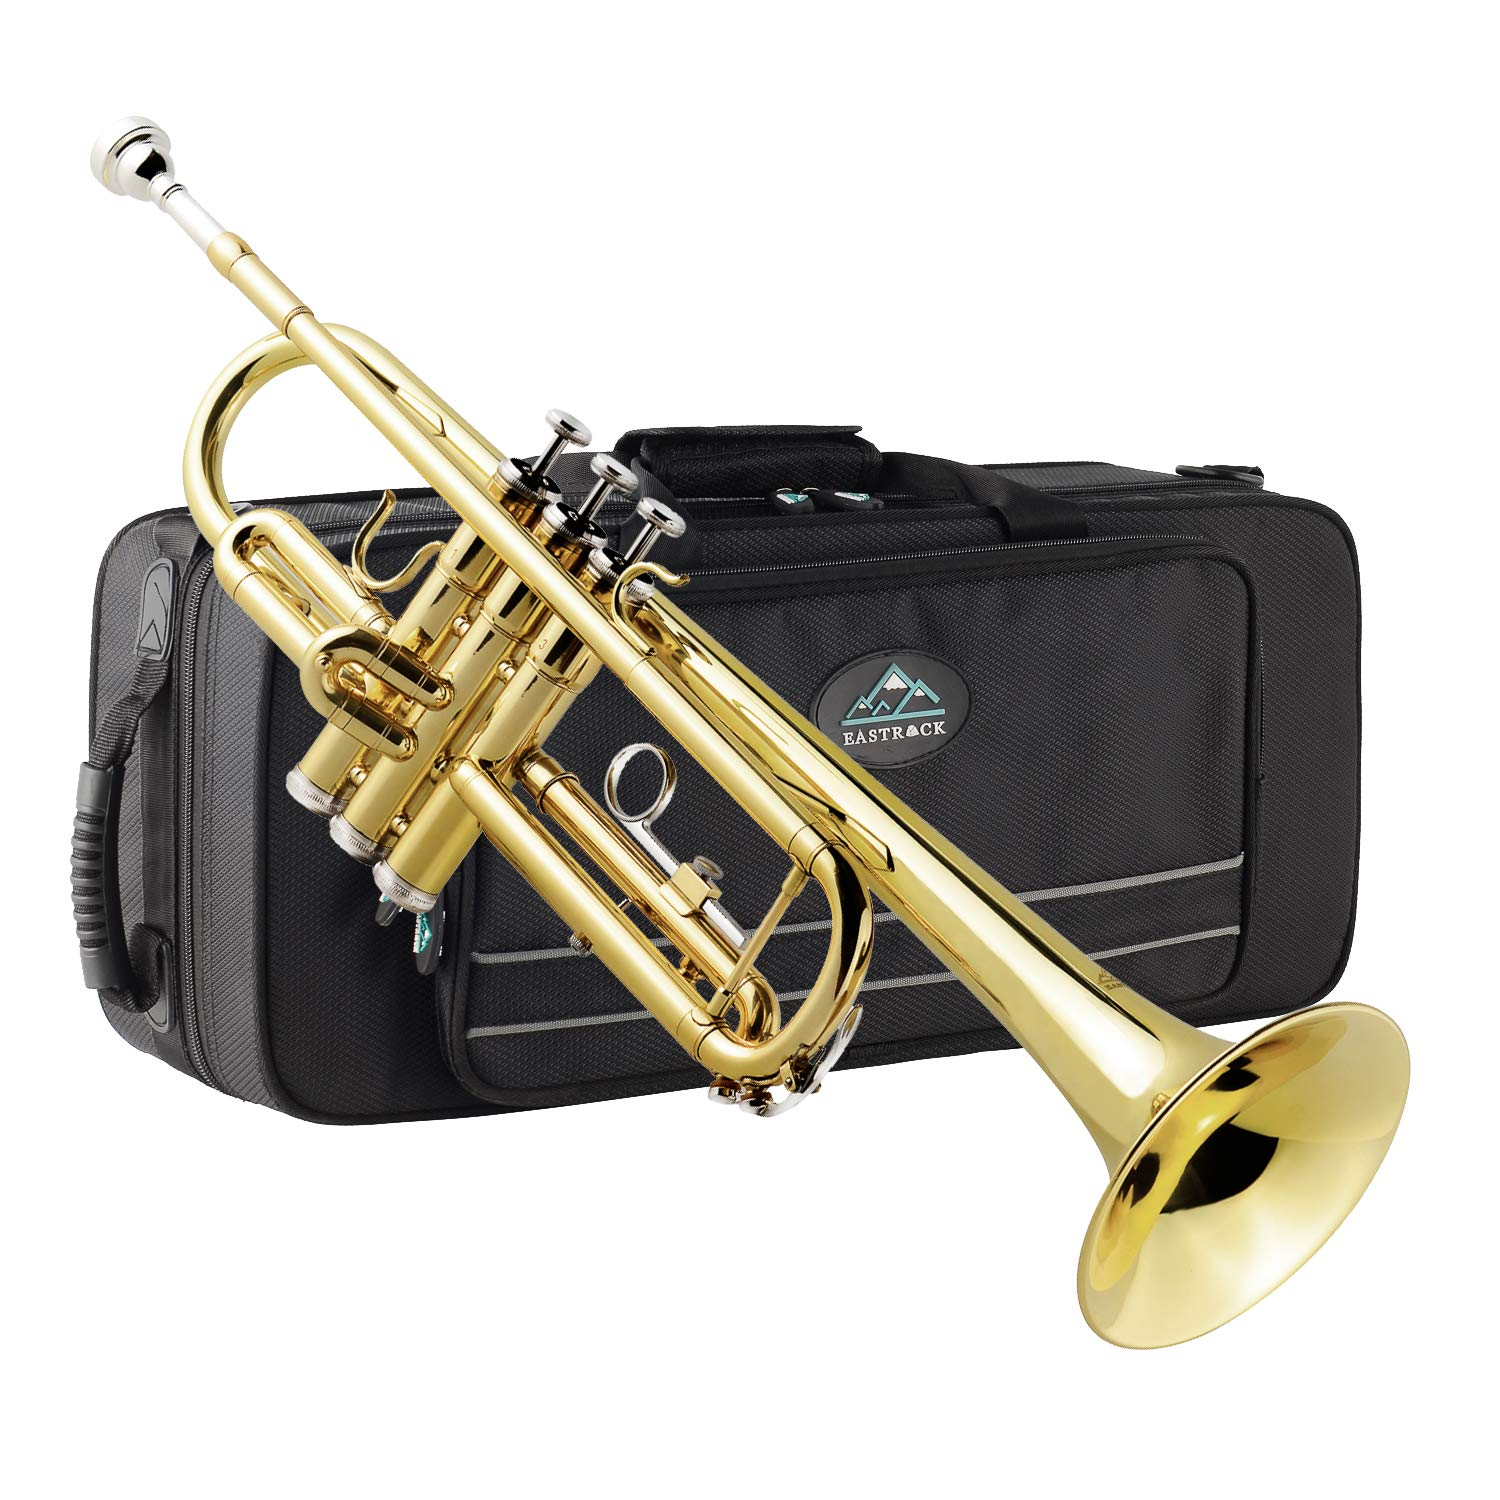 Eastrock Trumpet Brass Standard Bb Trumpet Set for Beginnner, Student with Hard Case, Gloves, 7C Mouthpiece, Trumpet Cleaning Kit-Lacquer Gold by EASTROCK